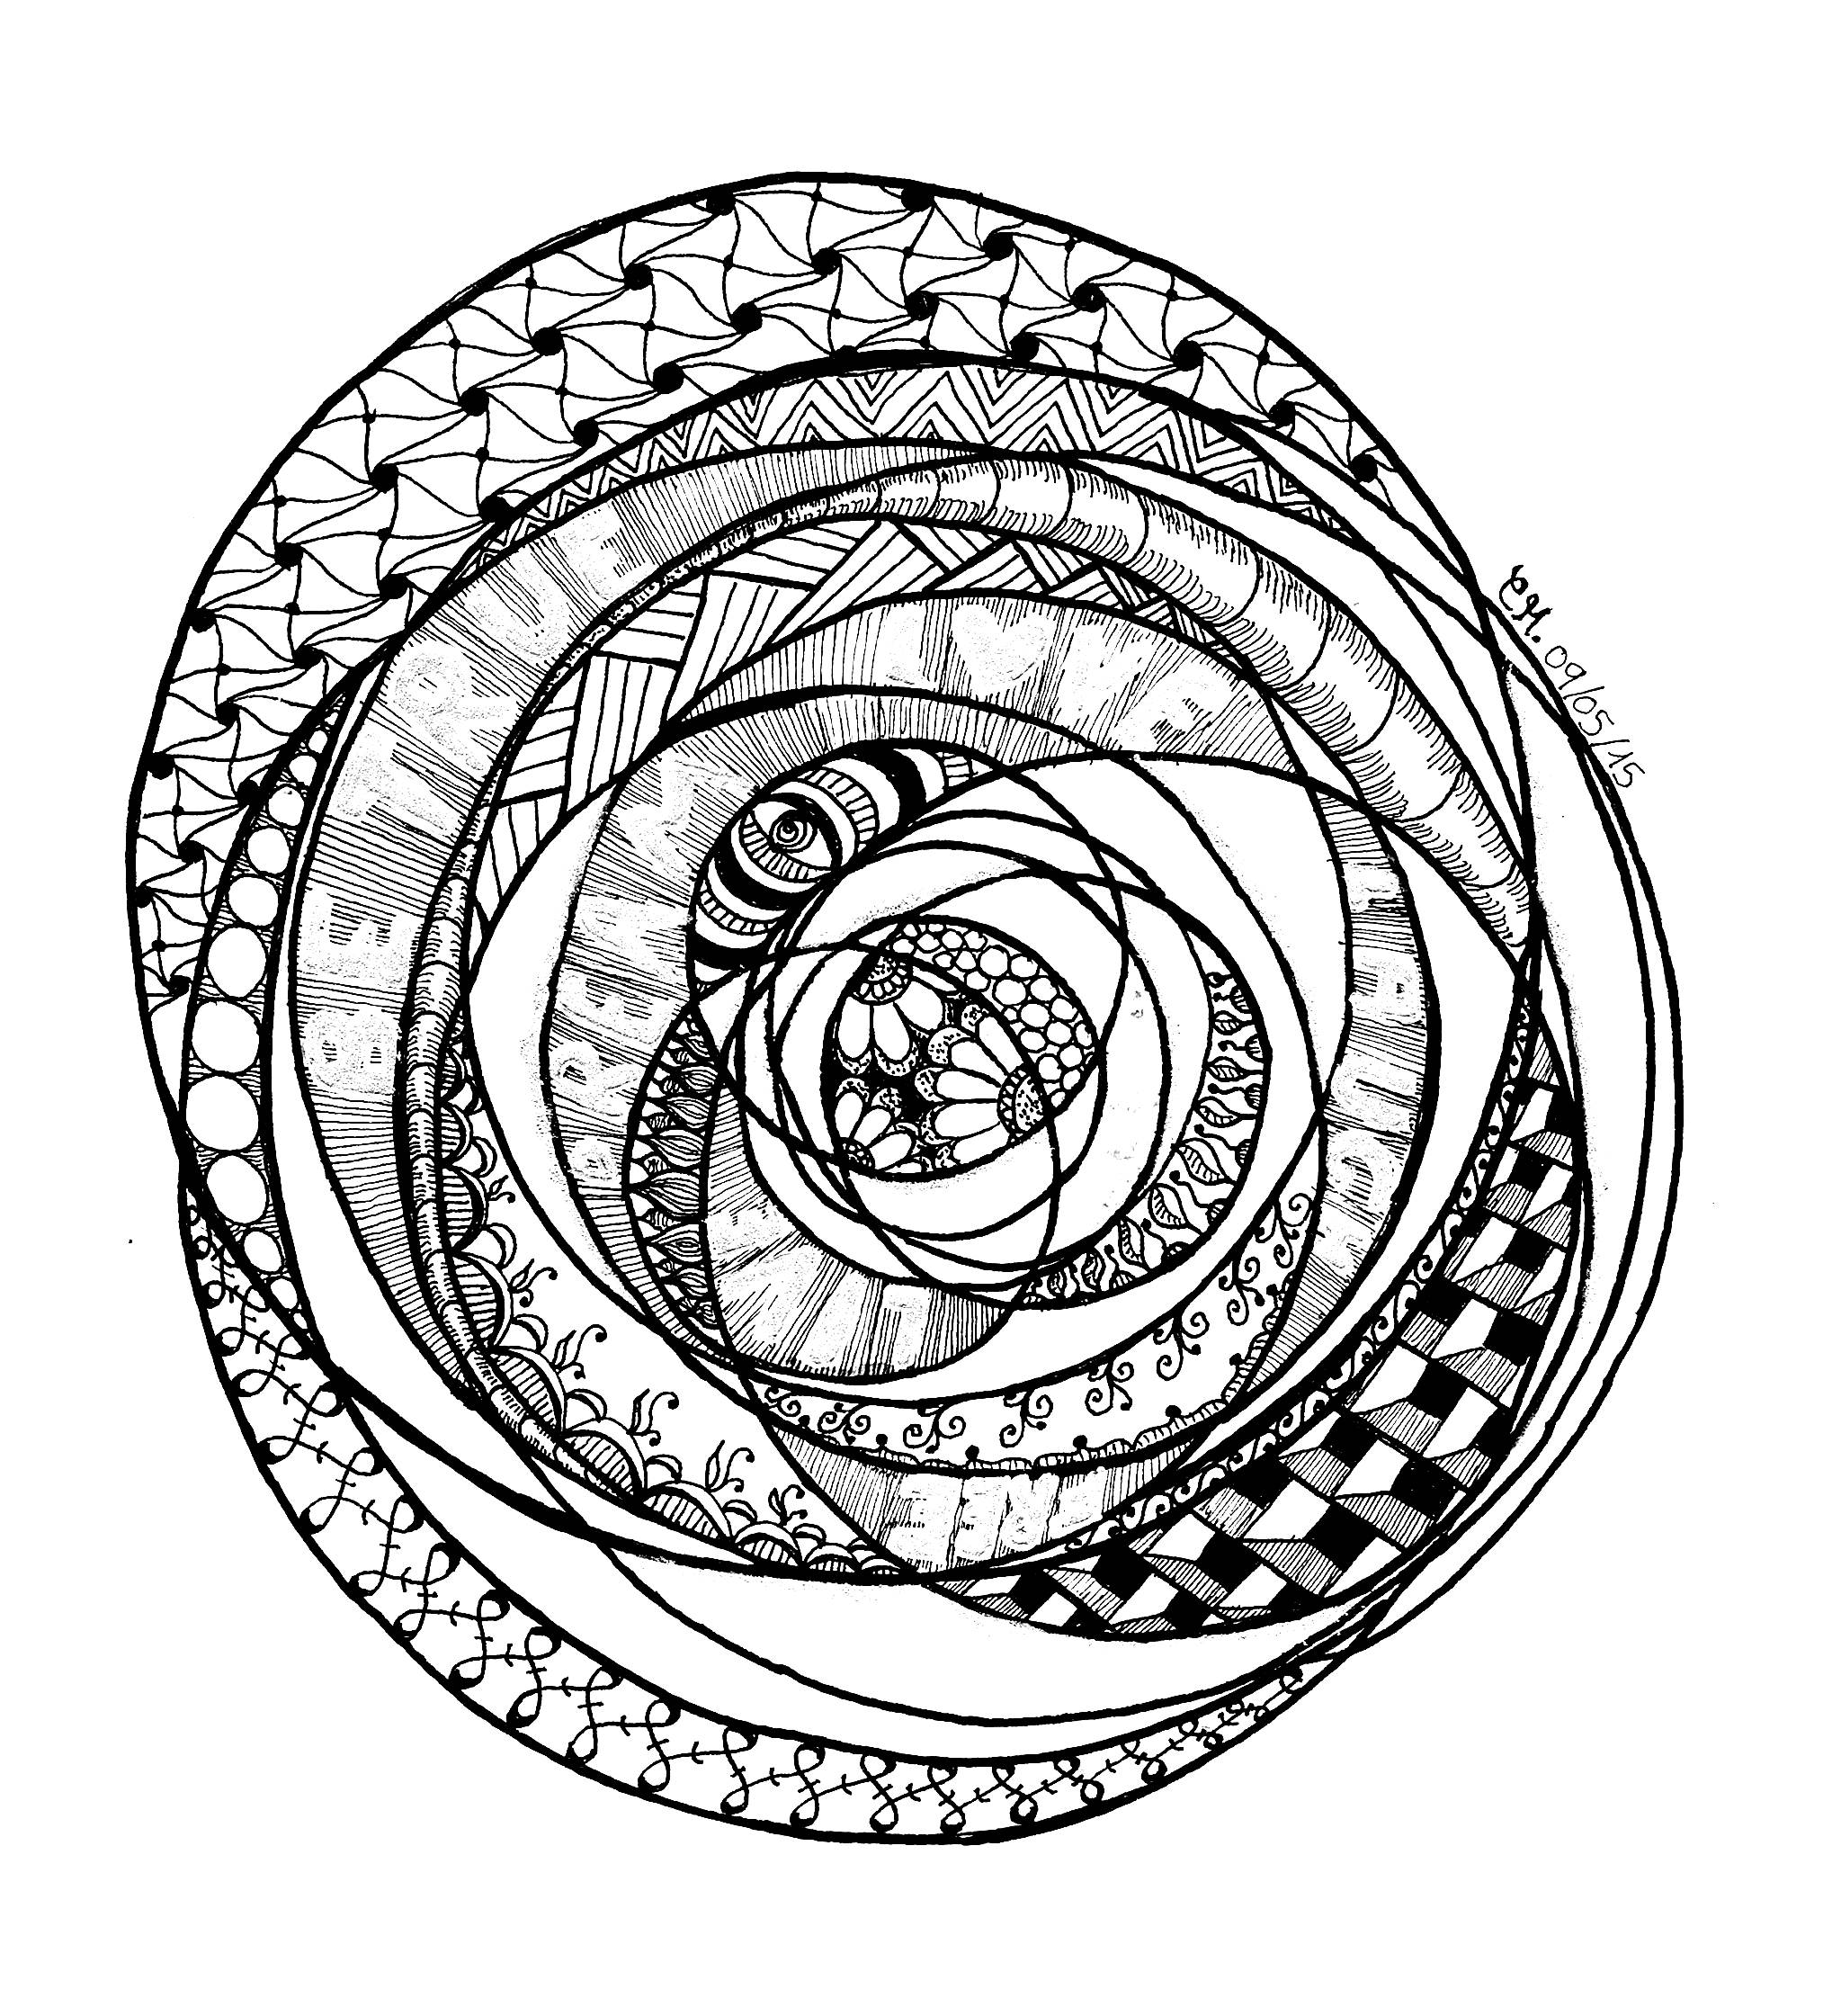 Coloring pages zentangle -  Imaginary Flower Exclusive Zentangle Coloring Page See The Original Work From The